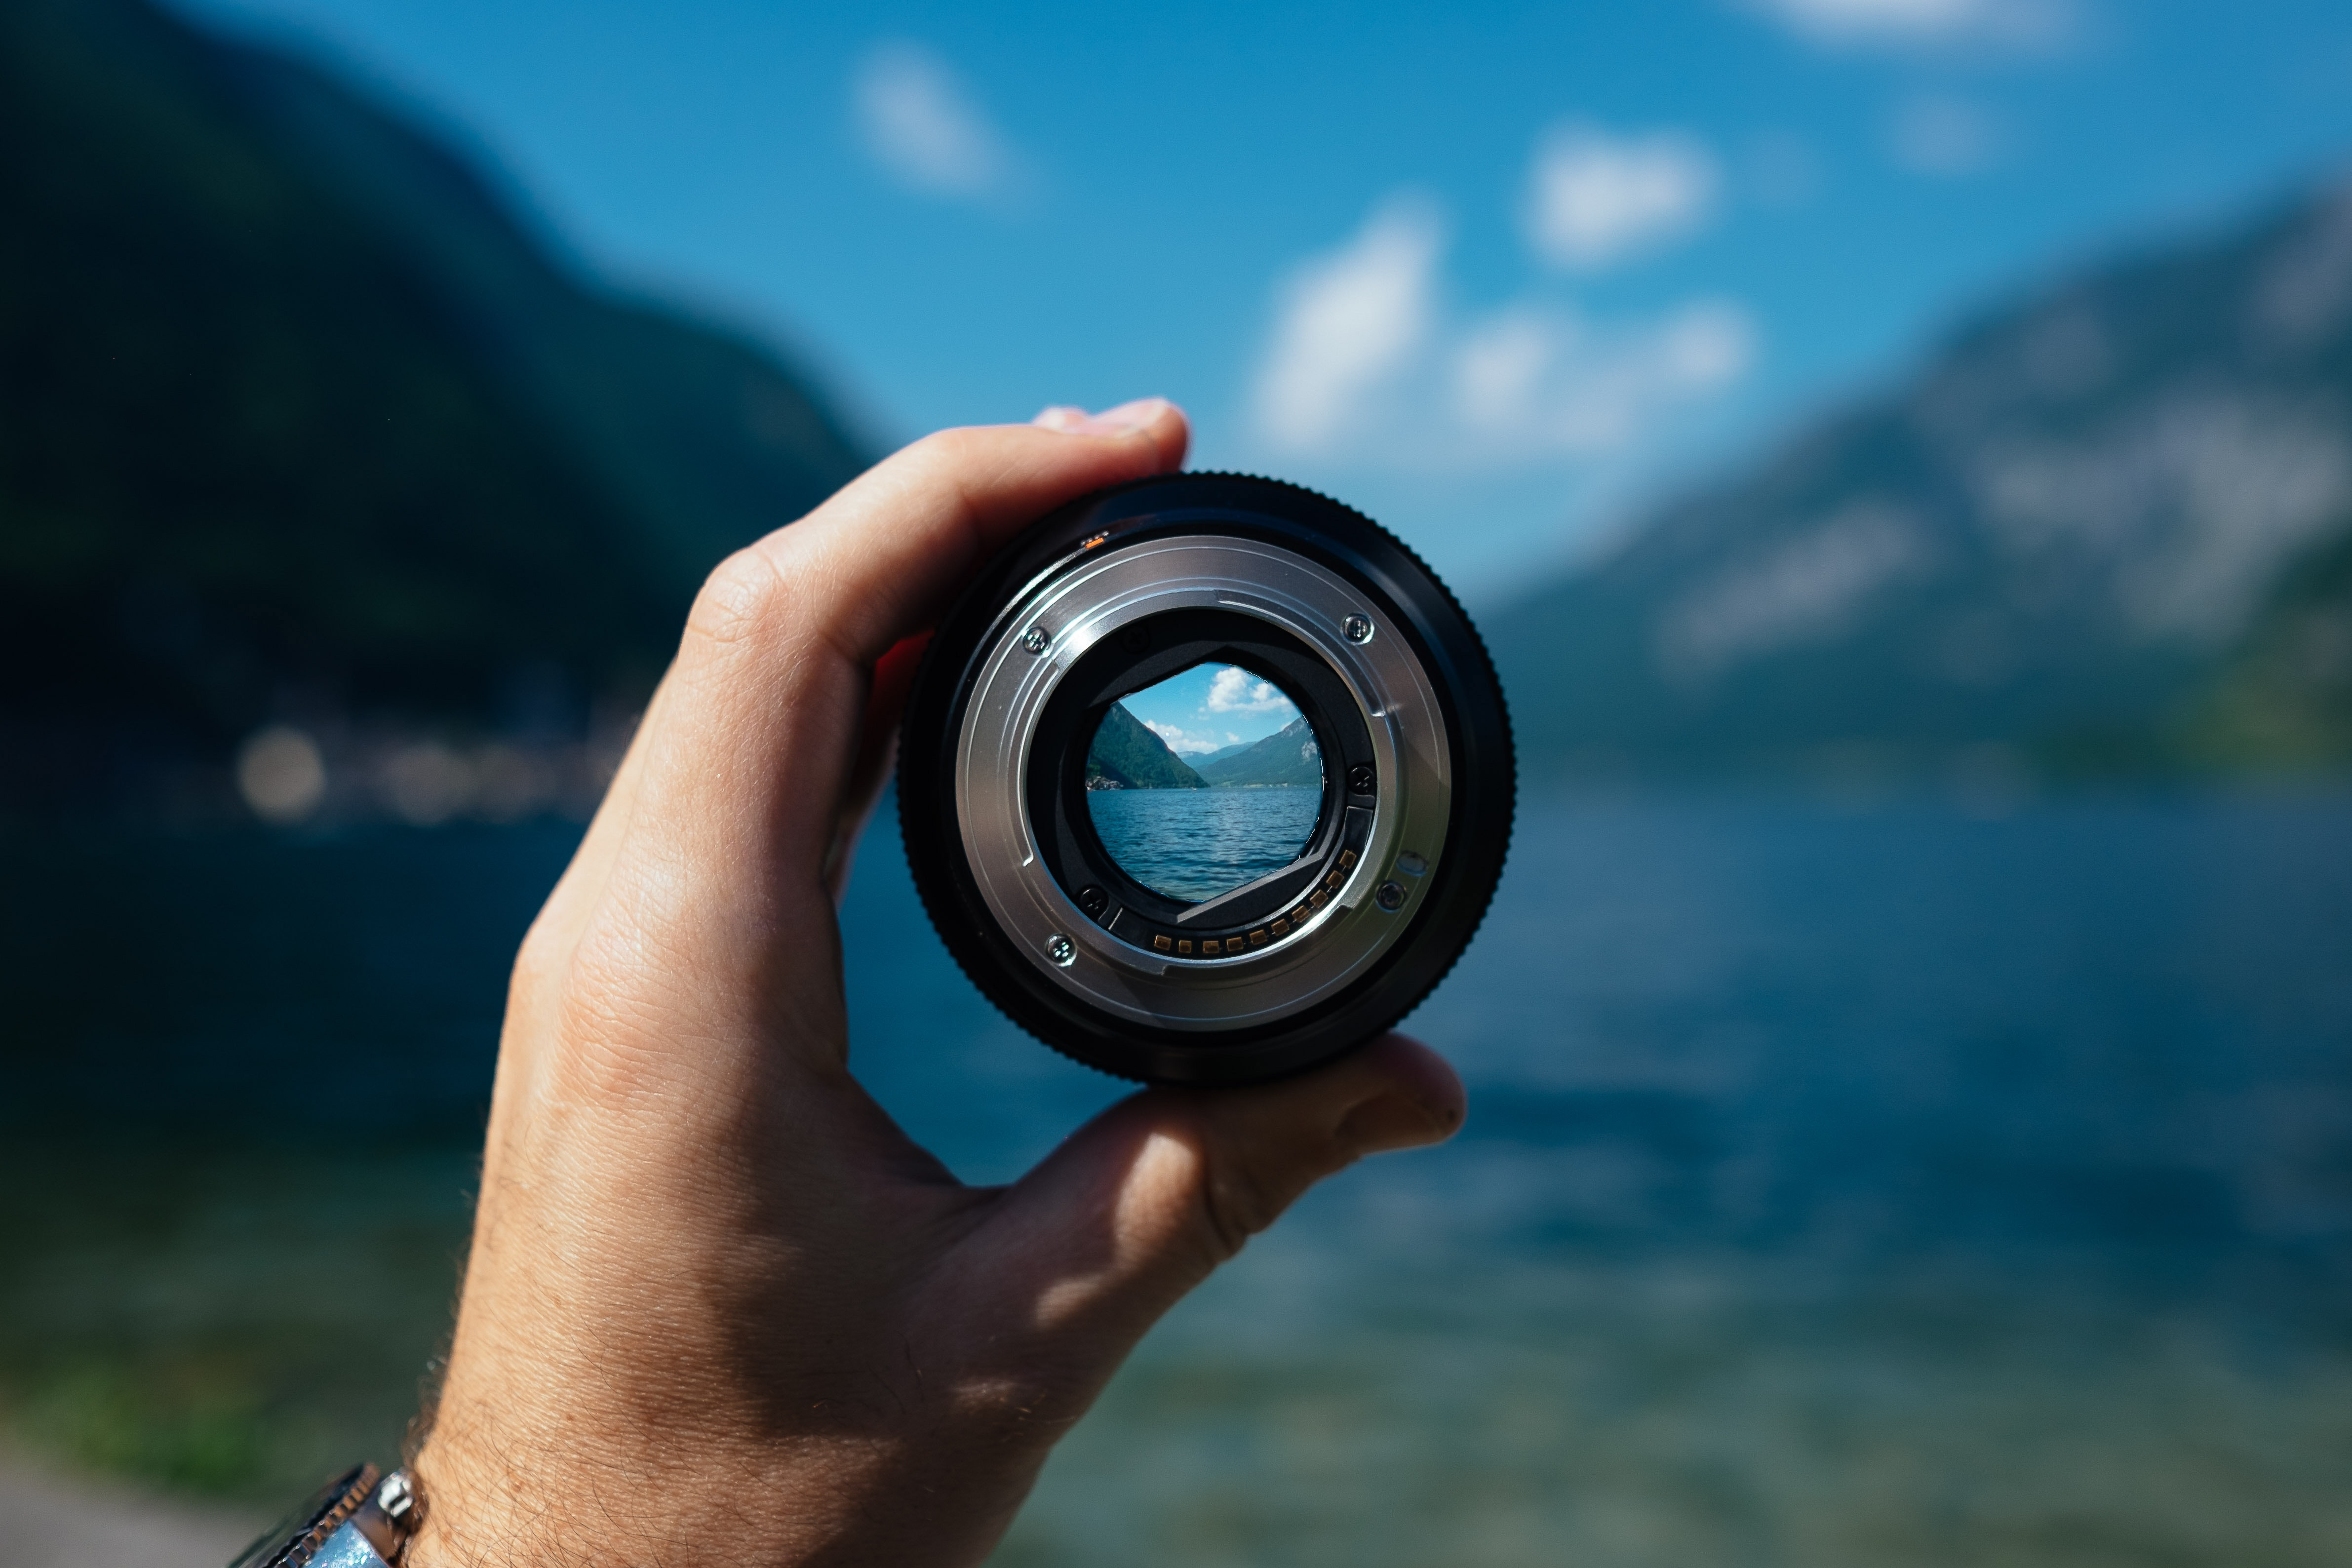 A person's hand holding a camera lens over a mountain lake